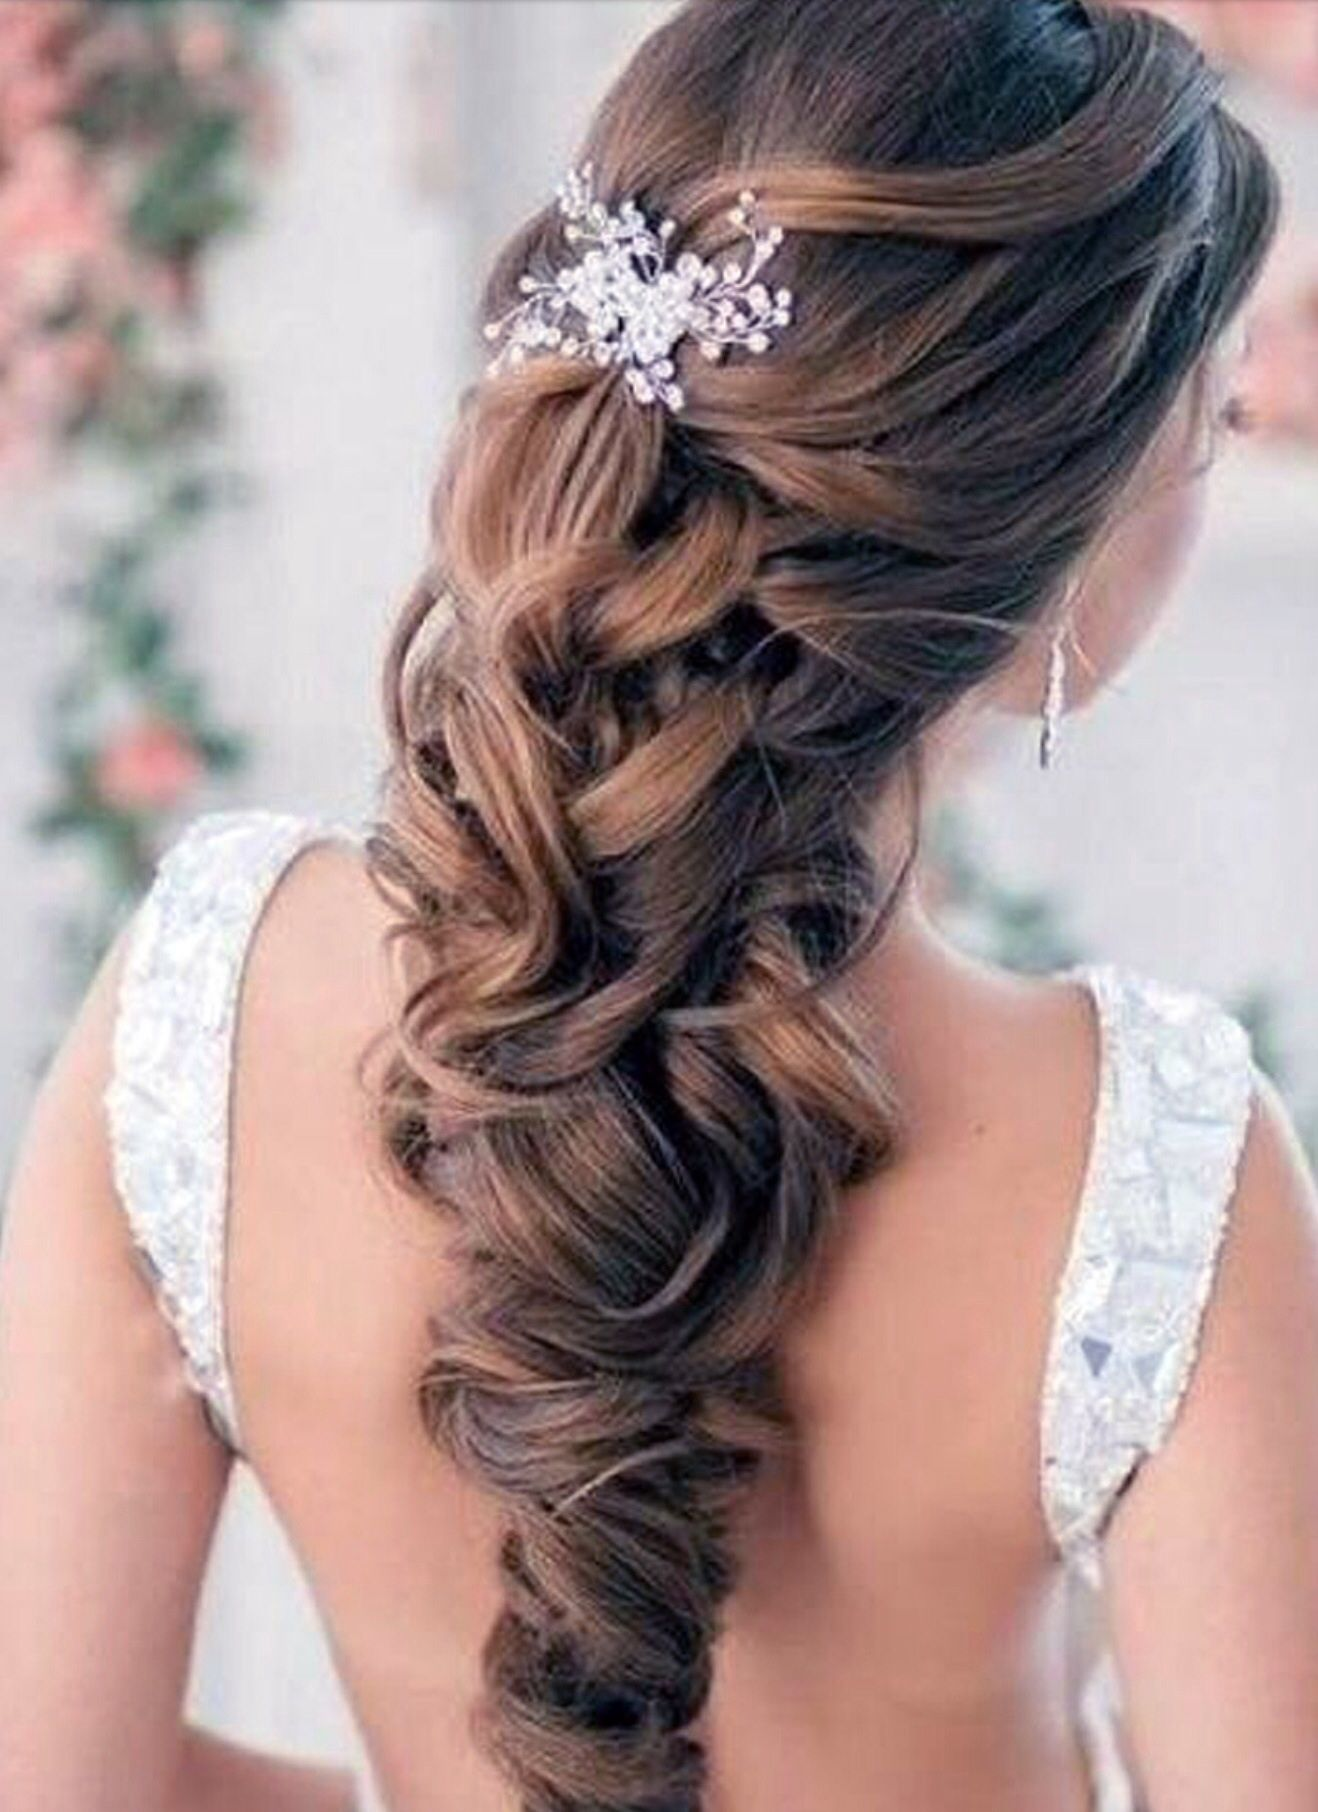 hairstyle bride | marriage/love life | long hair styles